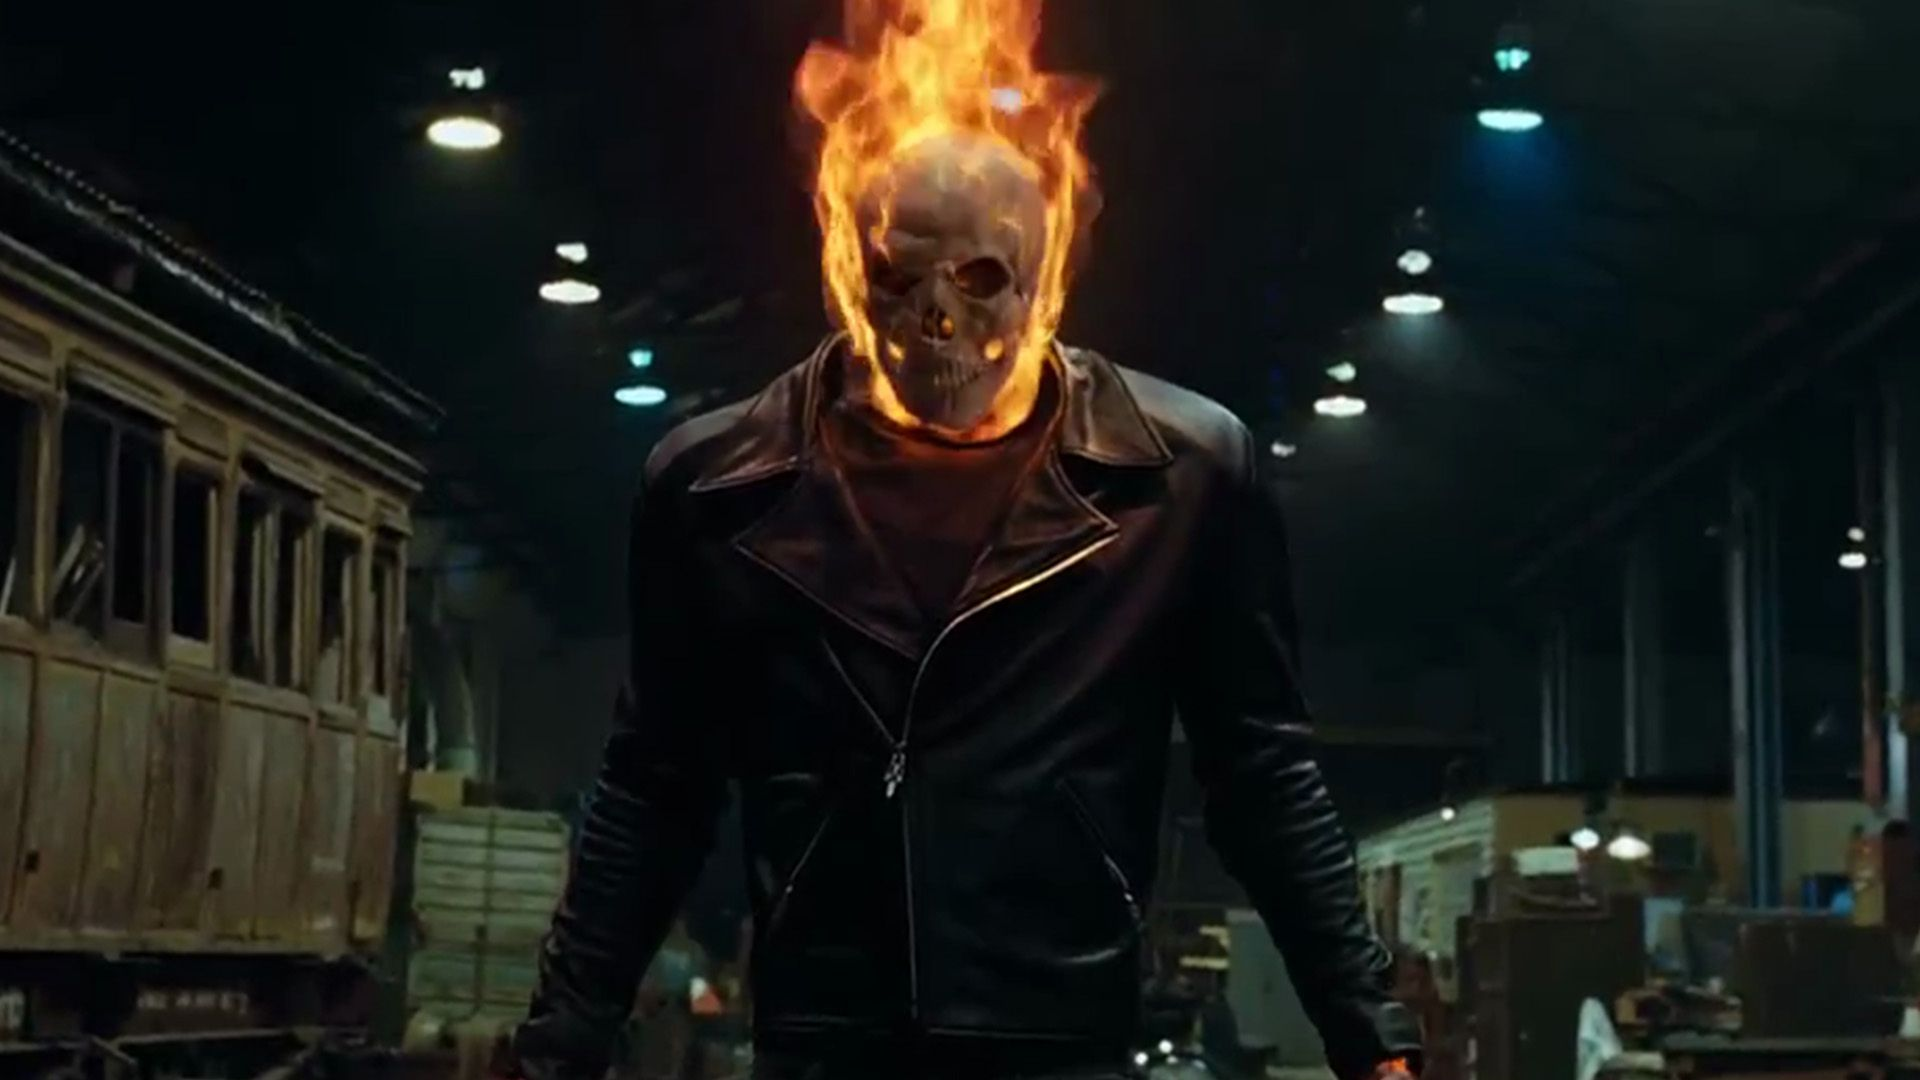 Nicolas Cage Wants An R Rated Ghost Rider Movie With A New Actor In